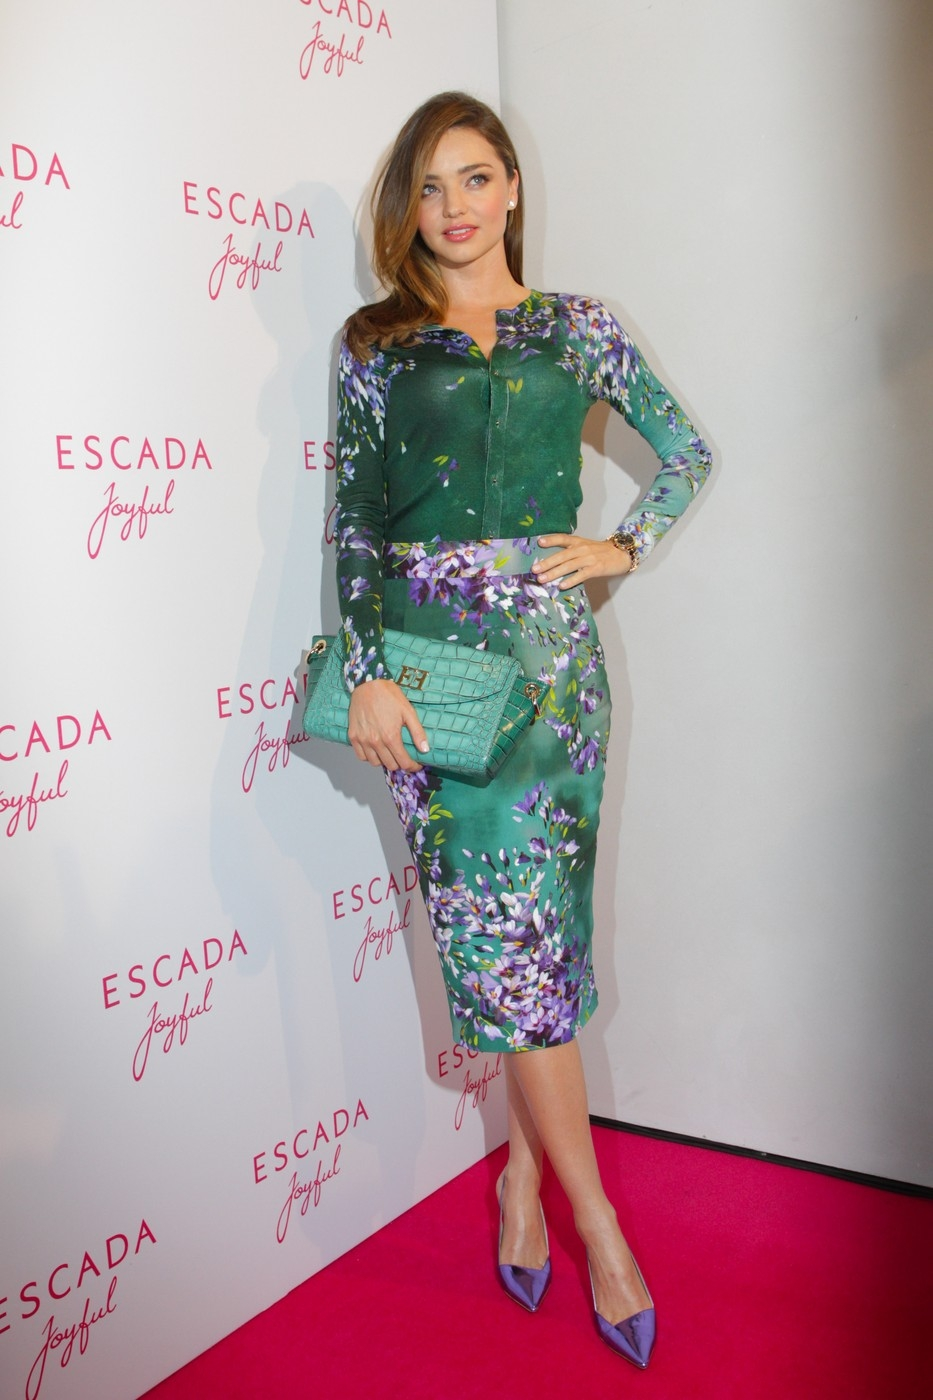 Escada Joyful Roadshow